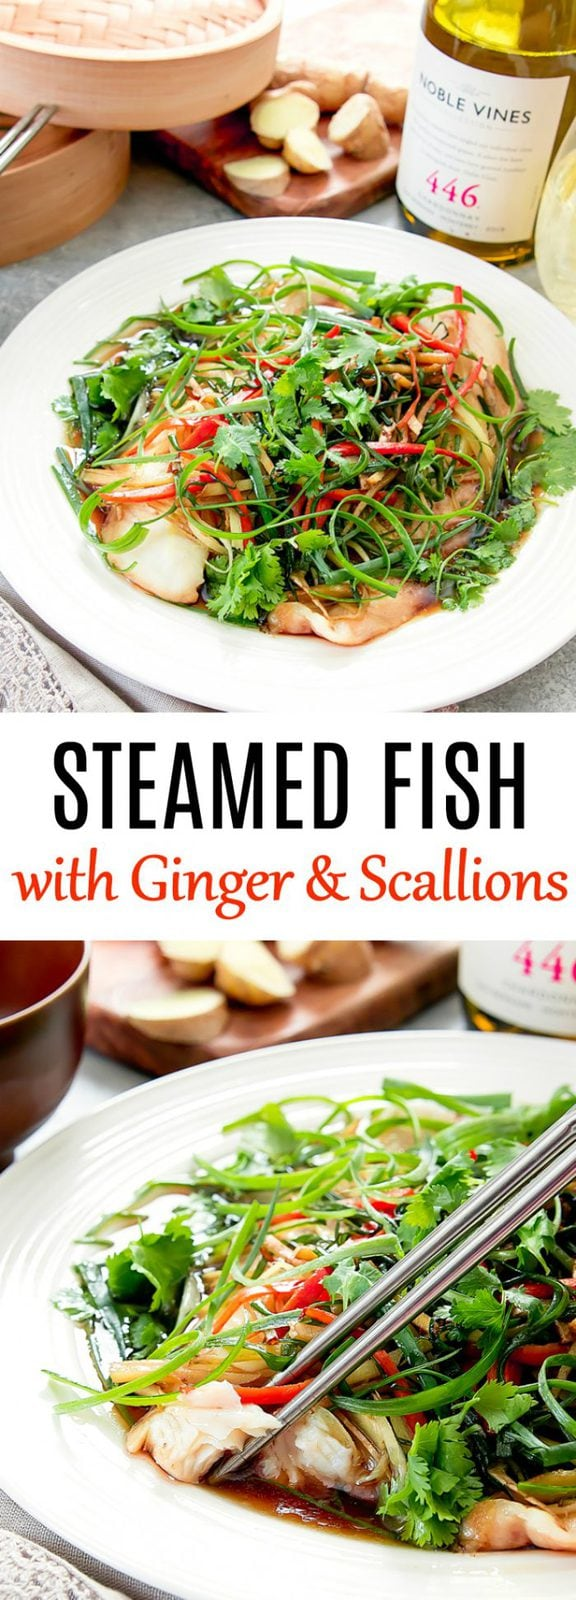 Chinese-style Steamed Fish with Ginger and Scallions